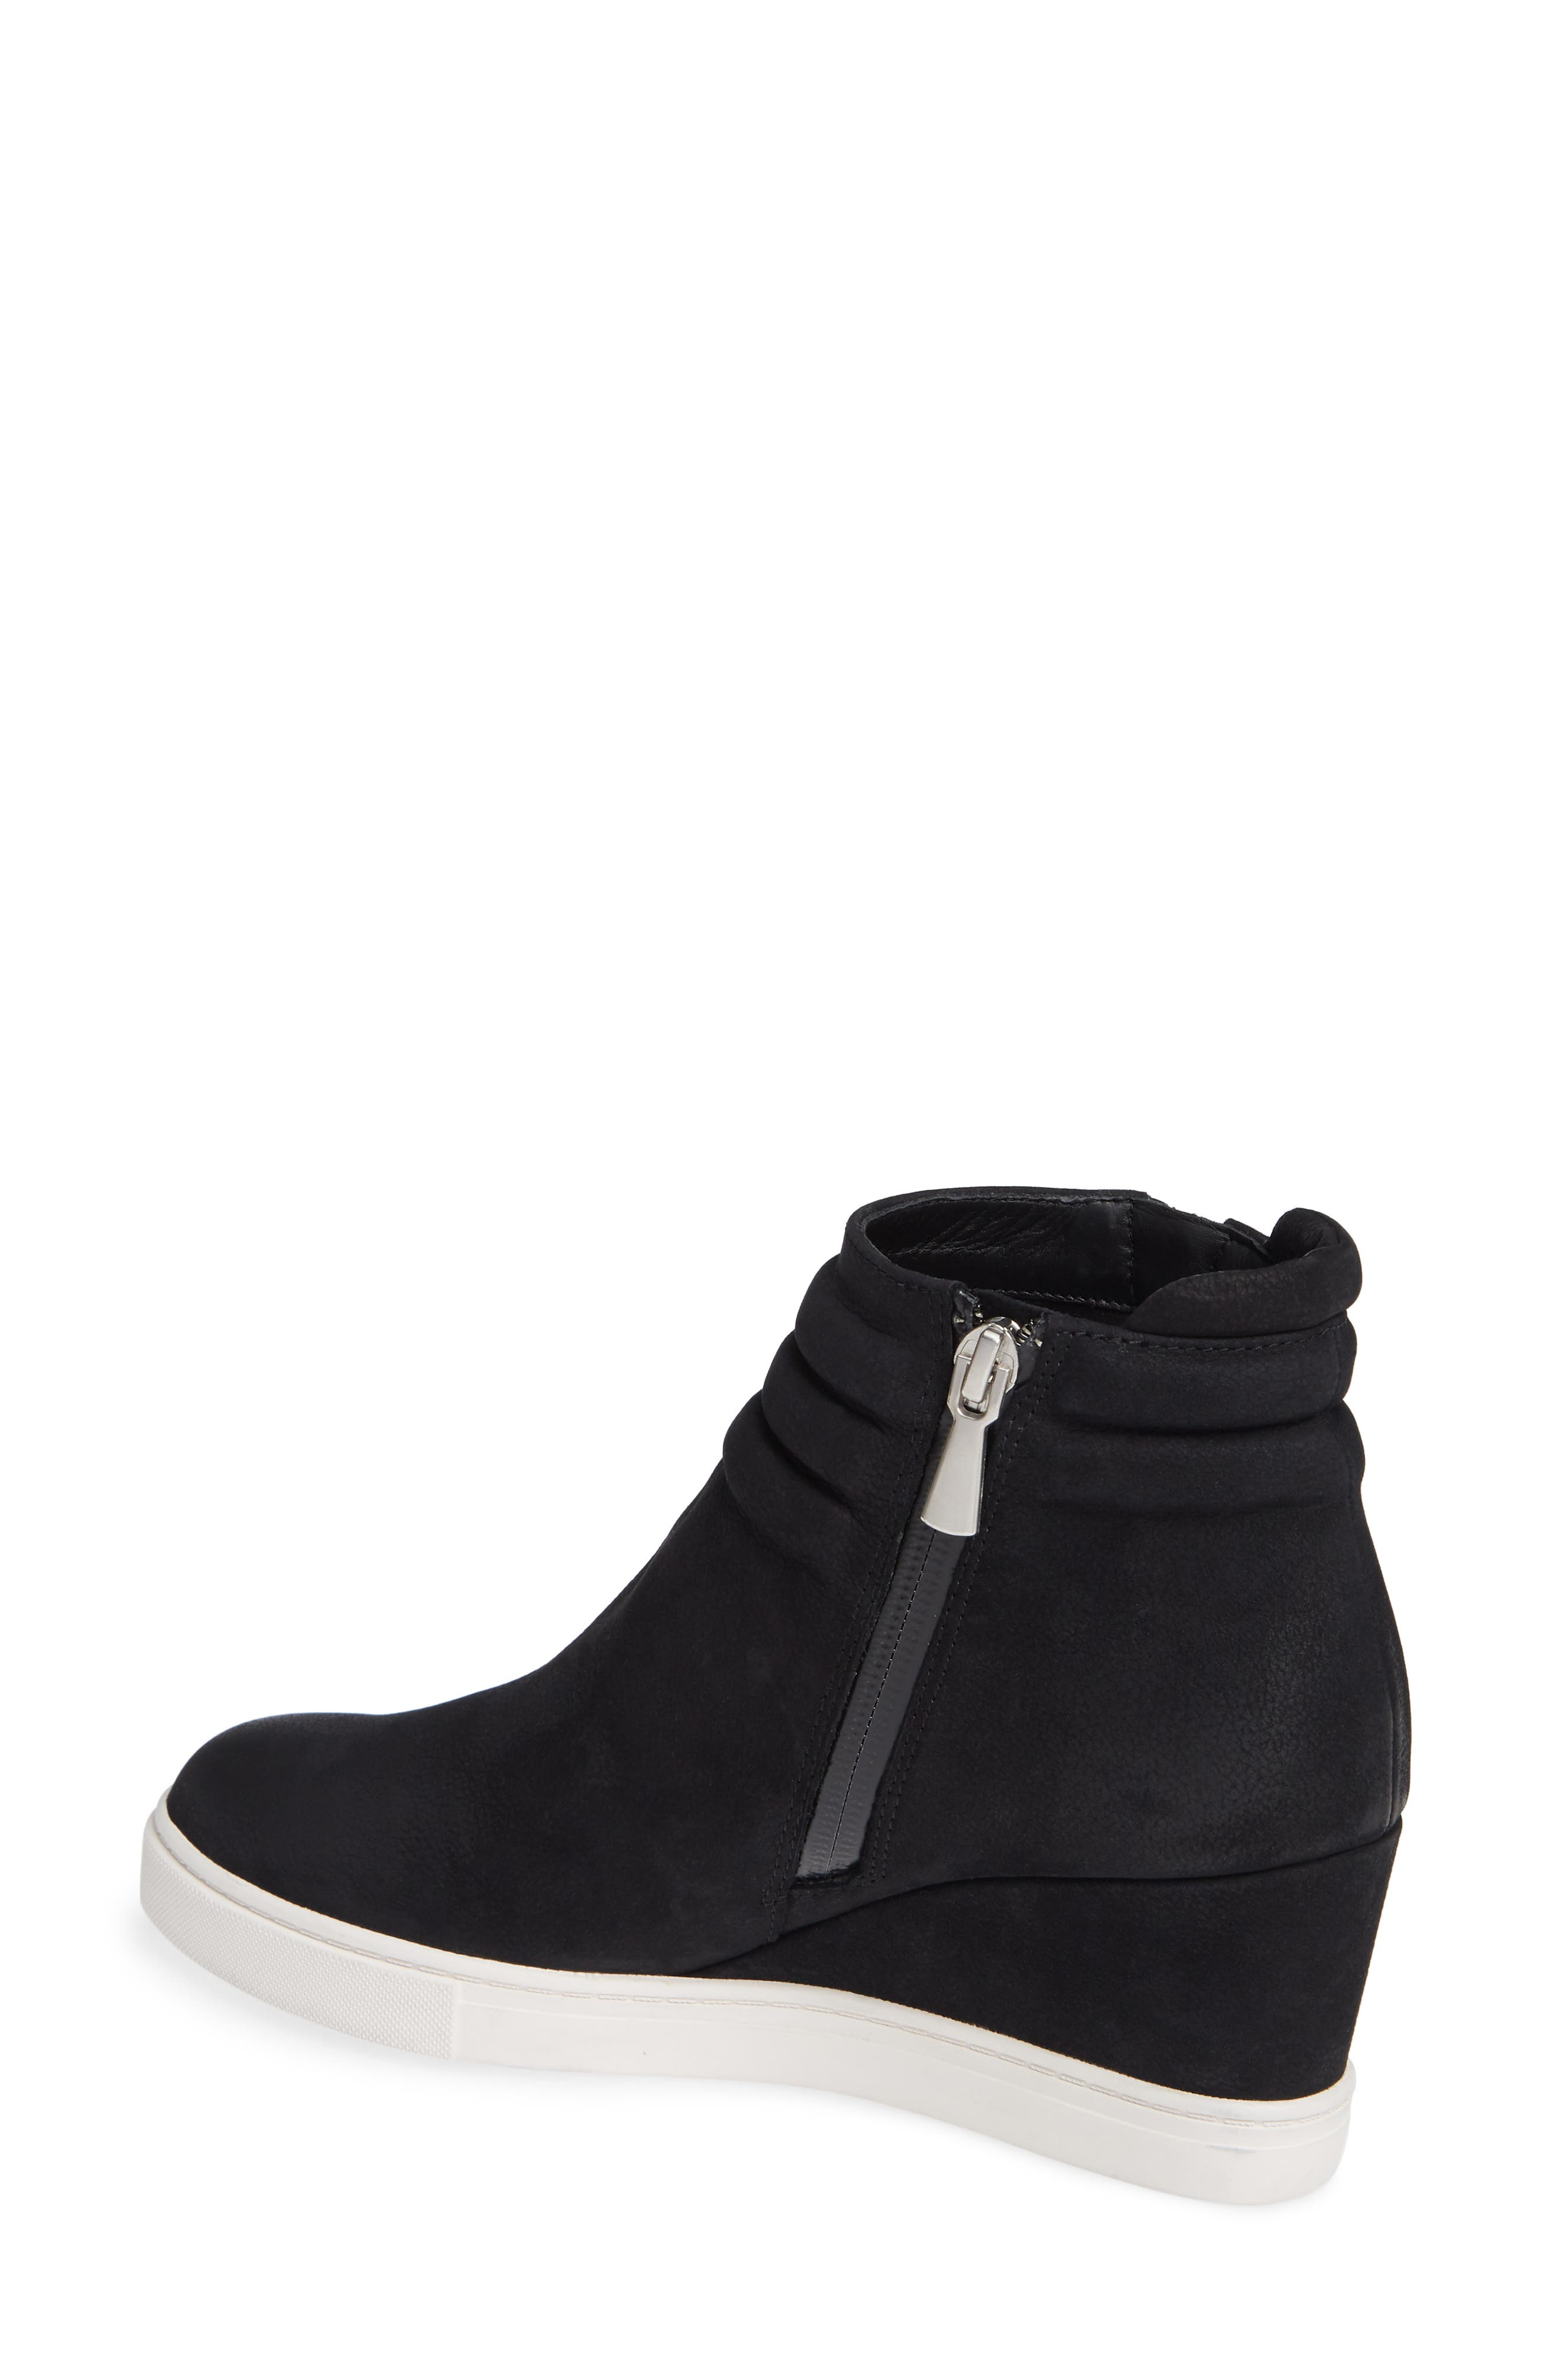 LINEA PAOLO, Flo Waterproof Wedge Bootie, Alternate thumbnail 2, color, BLACK LEATHER